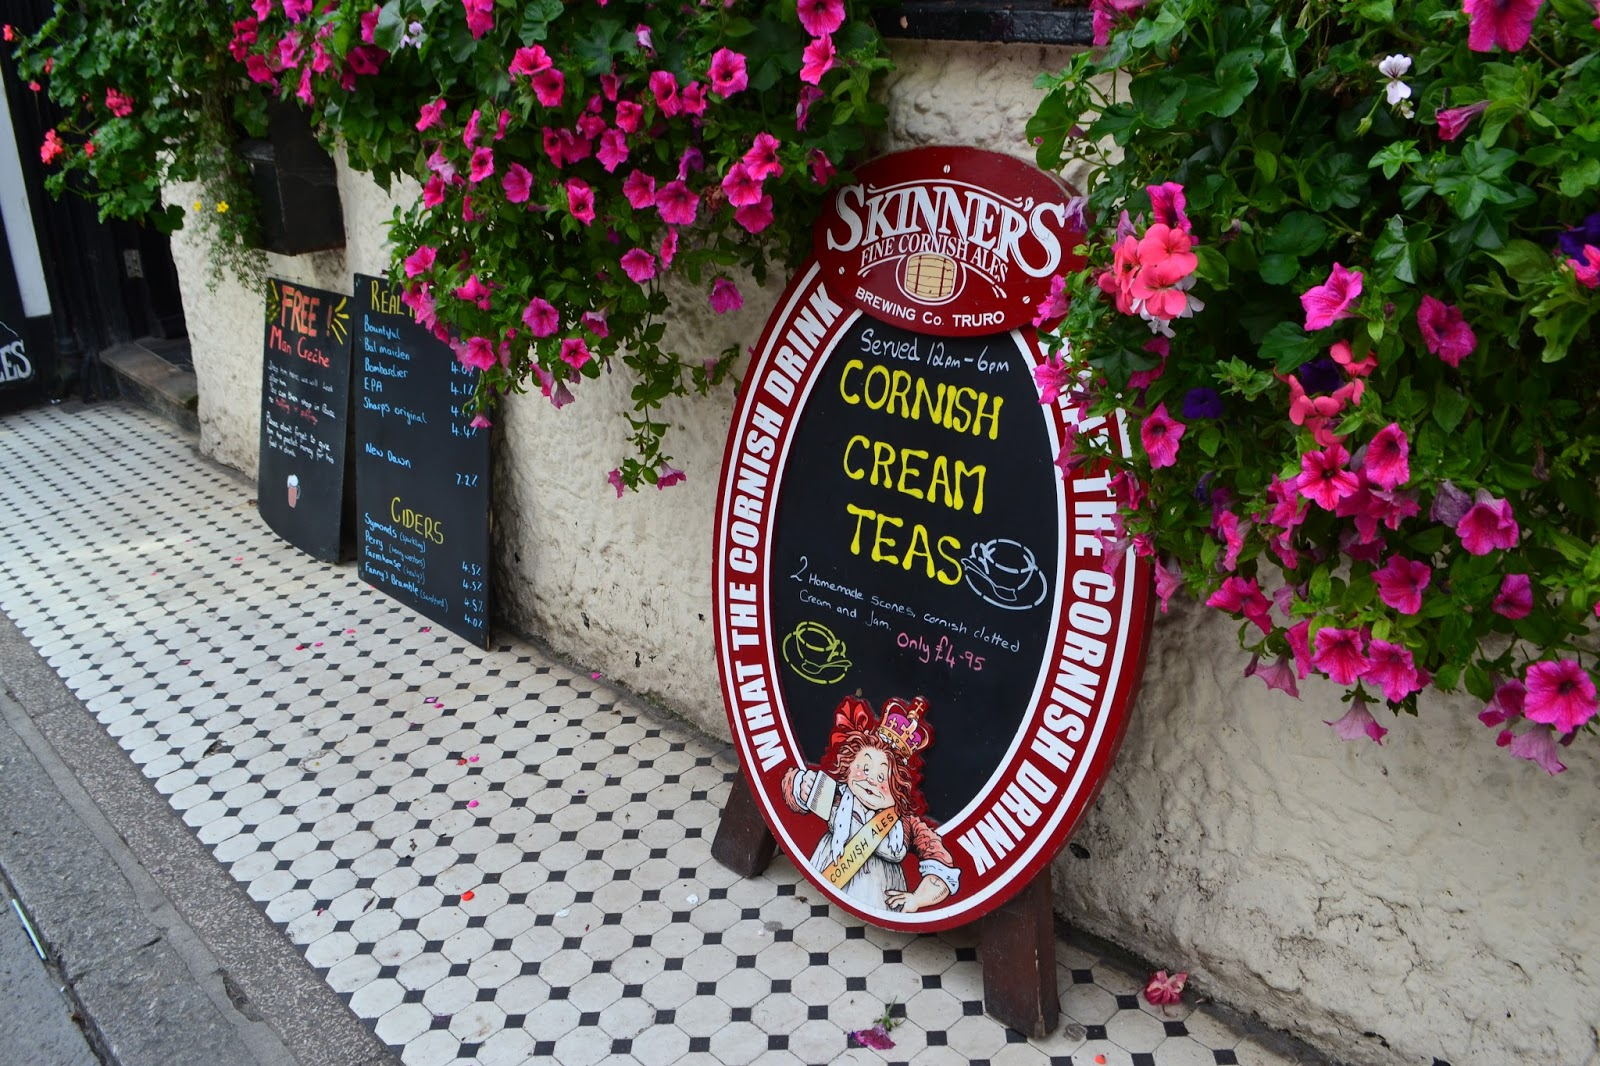 cornish-cream-teas-sign